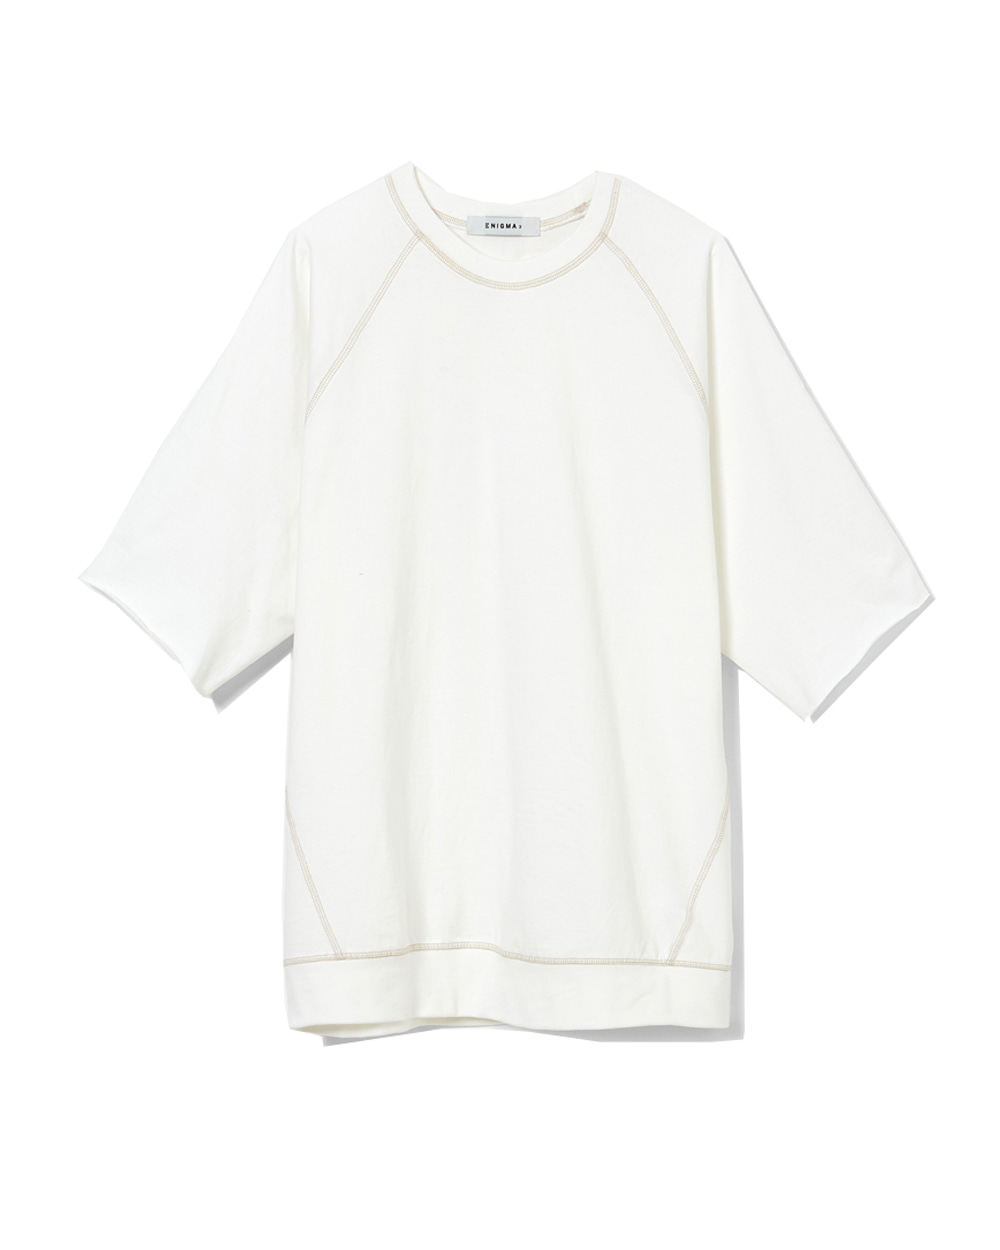 이니그마 Raglan Cut-off T-Shirt (White)